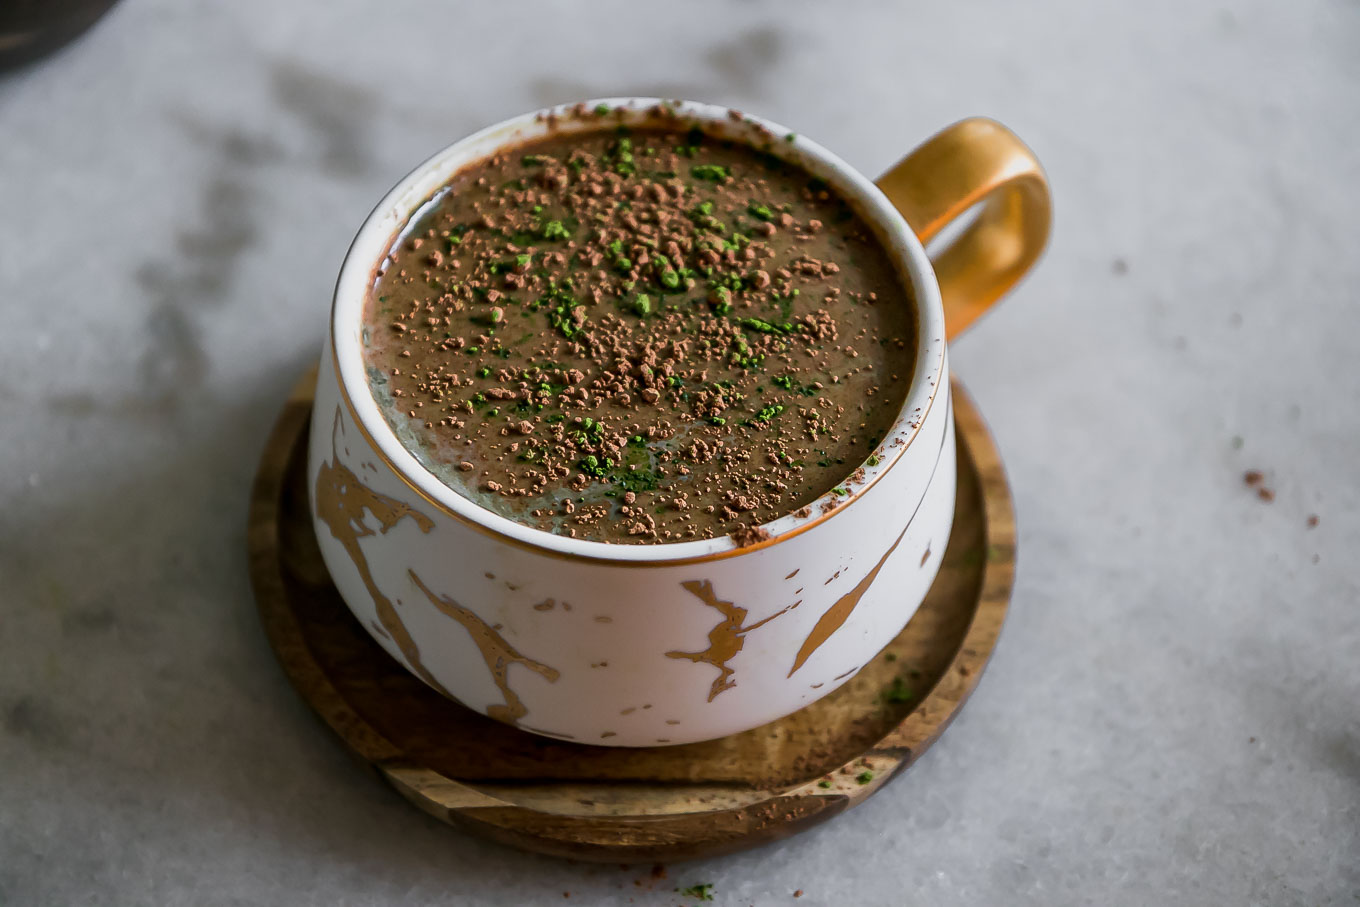 a mocha latte with green matcha powder in a white mug on a white table